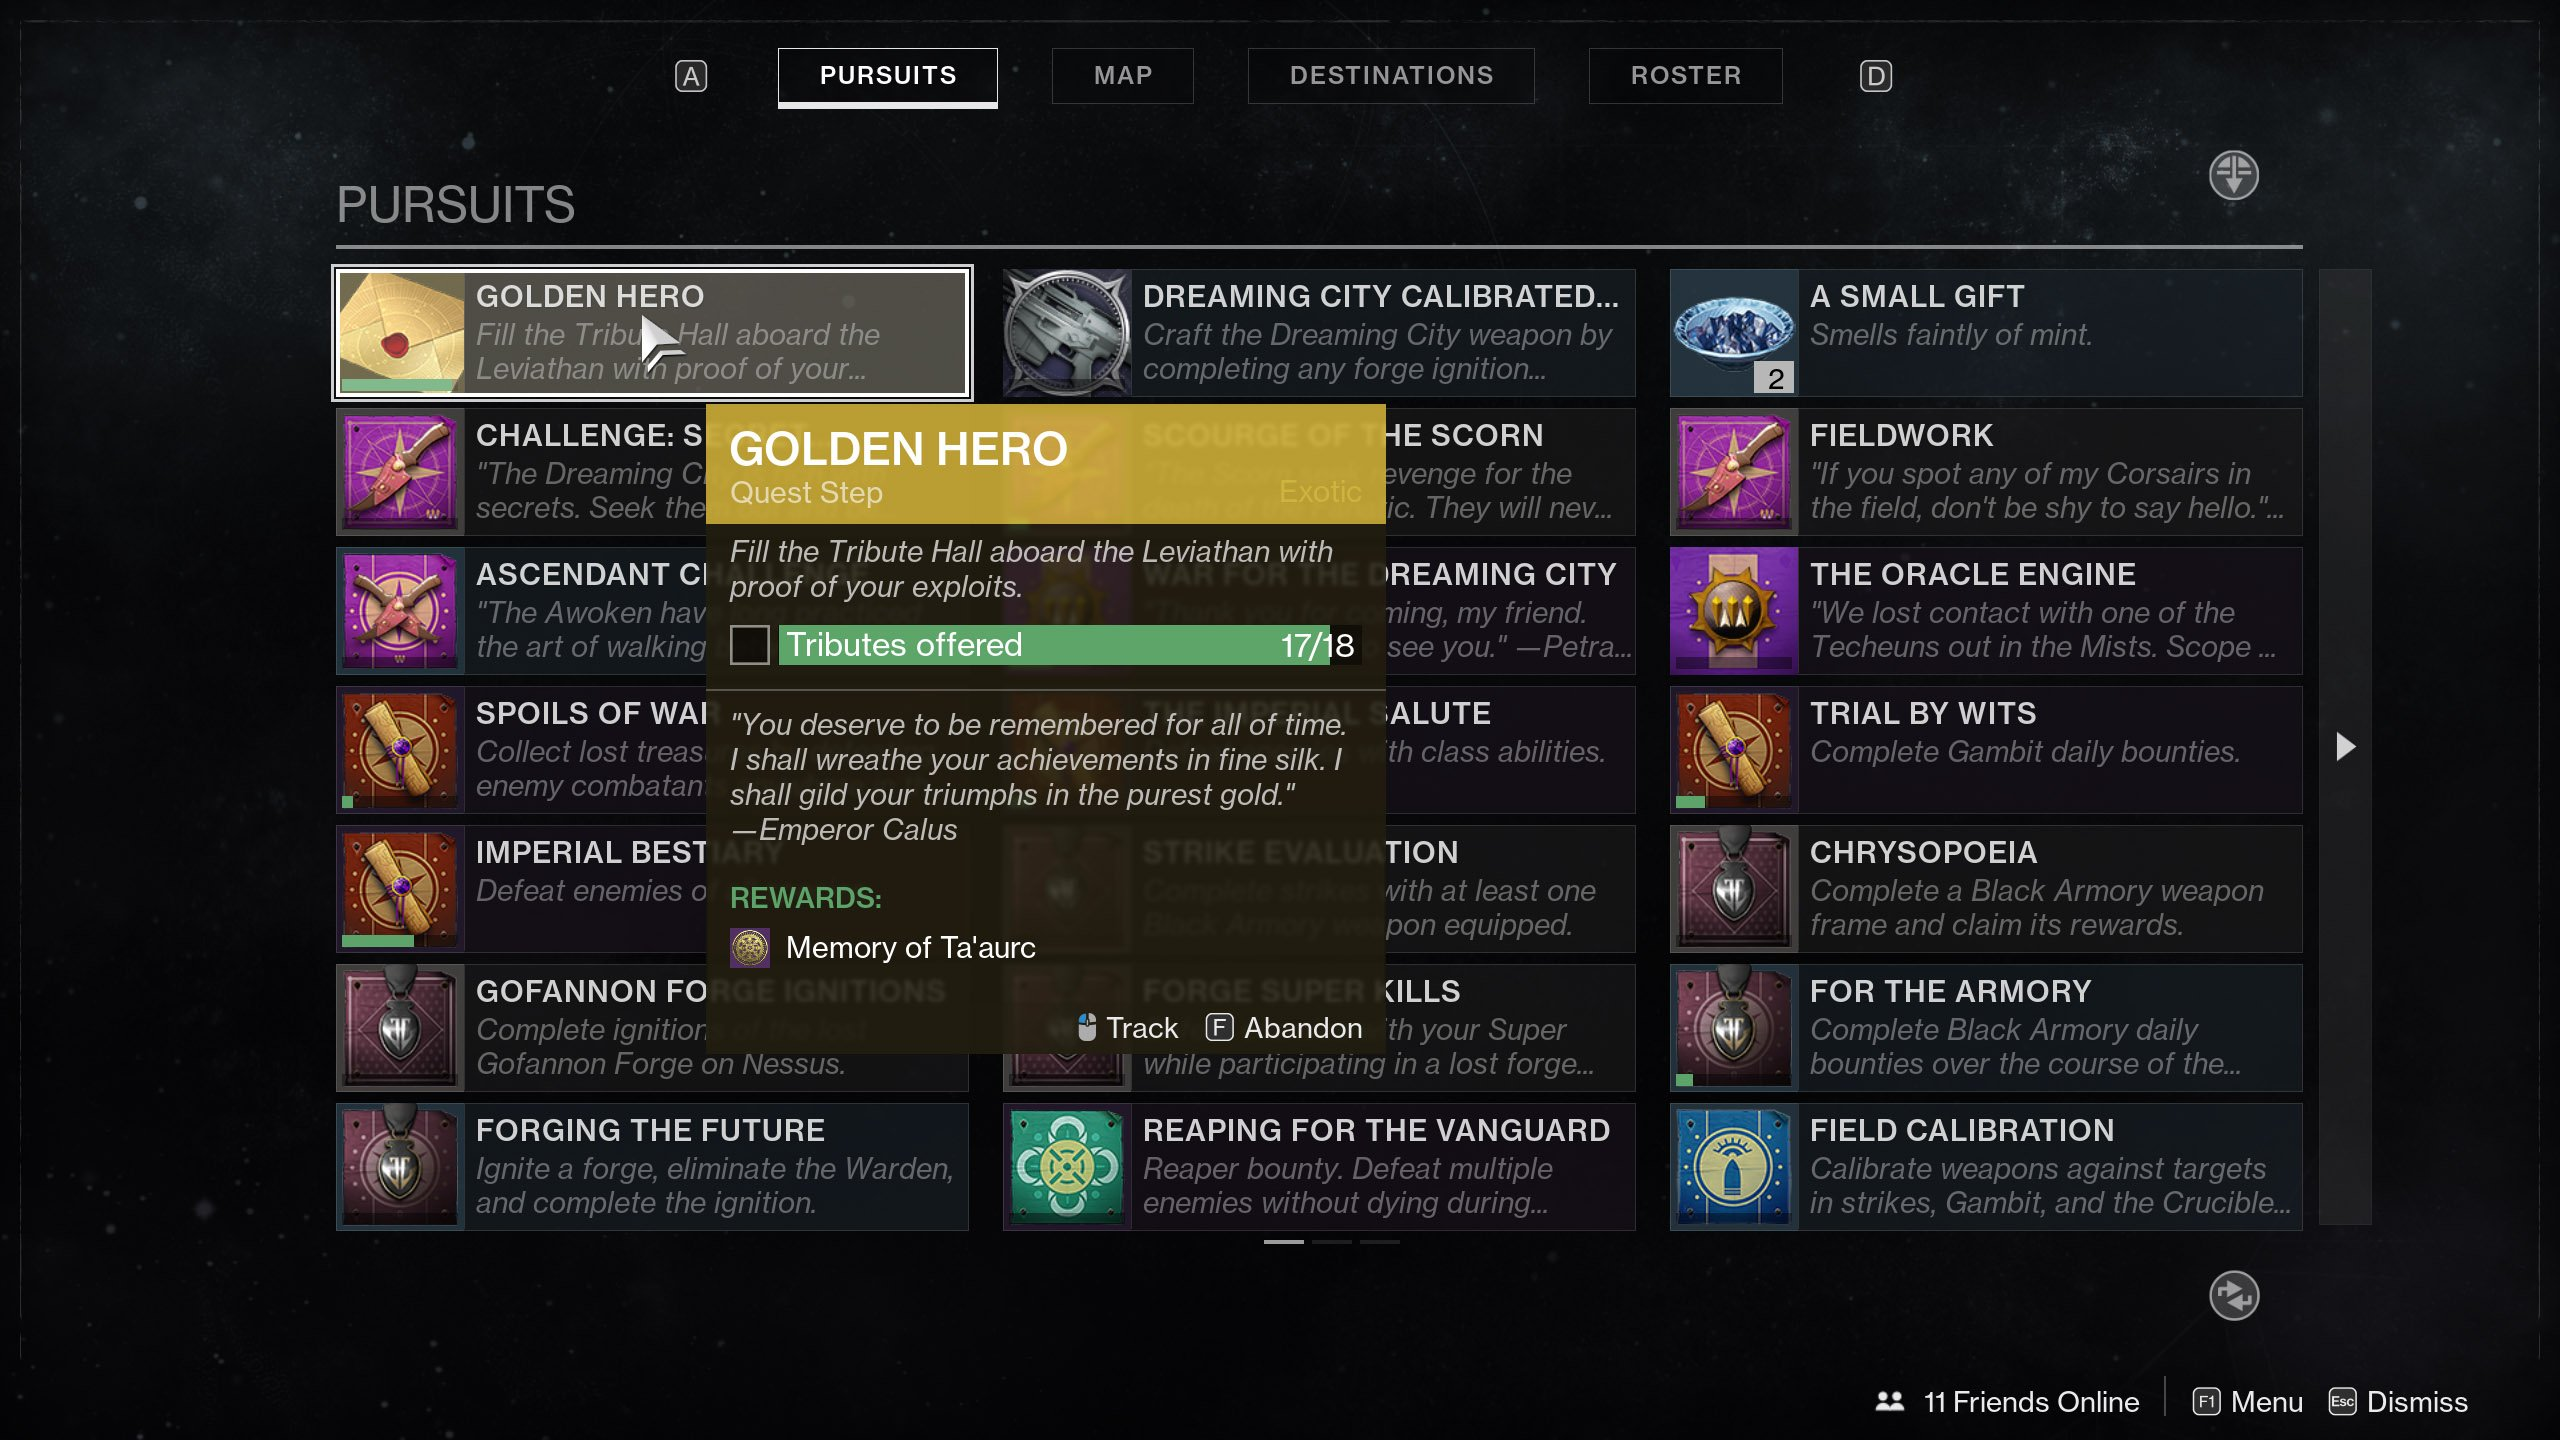 Golden Hero Quest Step Destiny 2